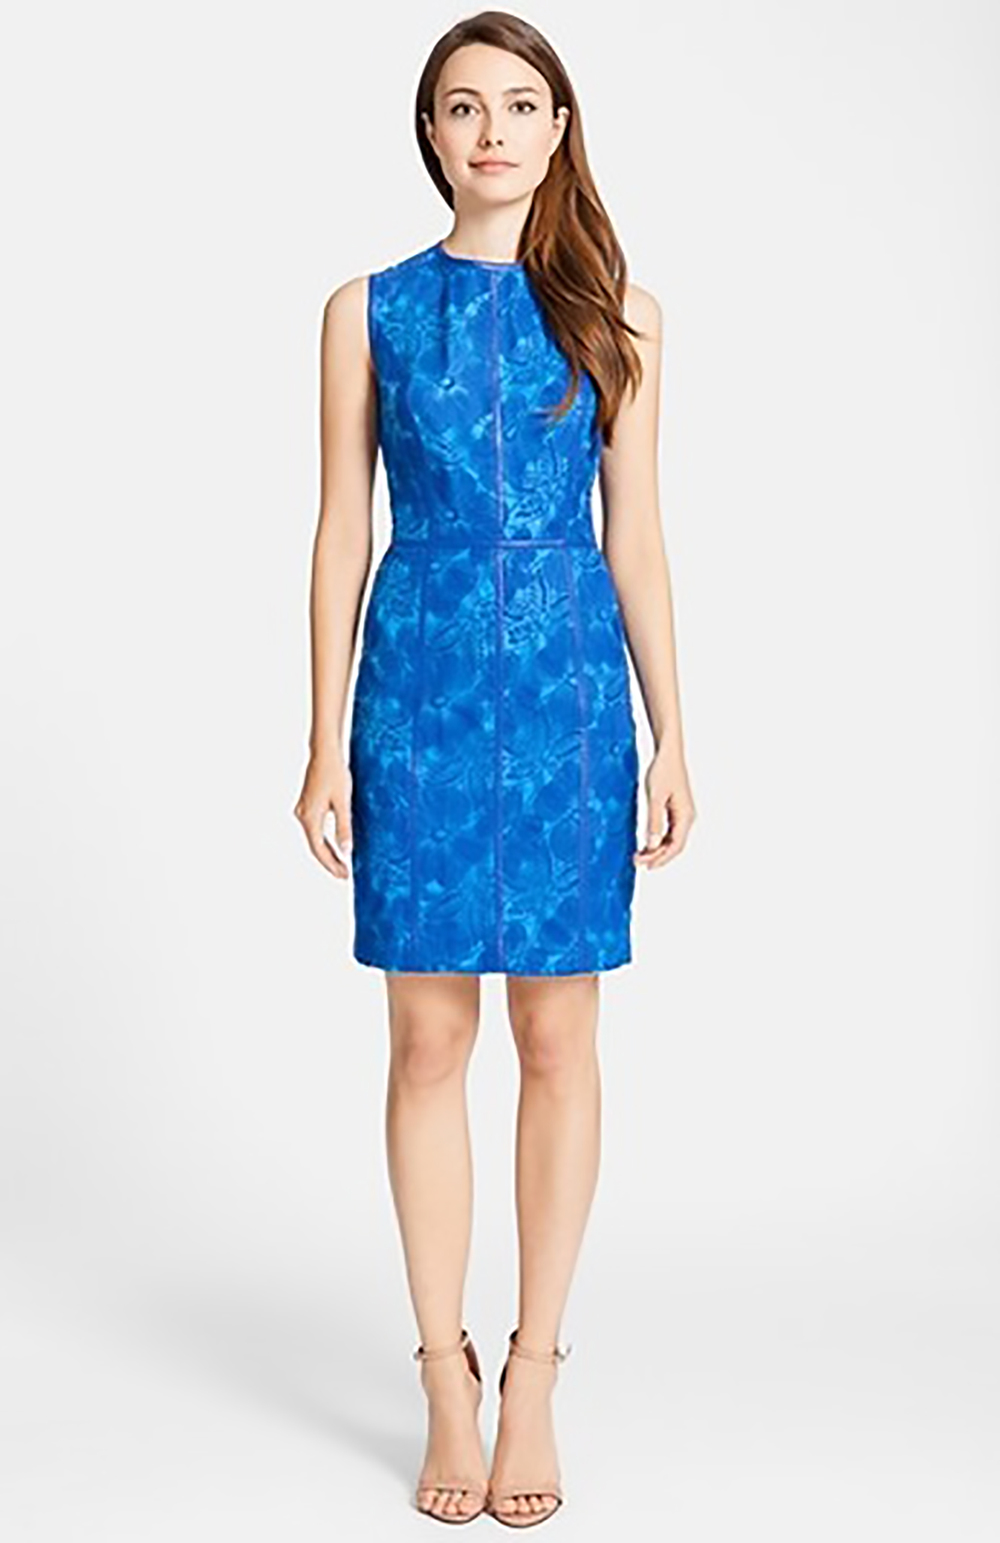 nordstrom cynthia steffe eleonora faux leather trim organza sheath dress 1500.jpg